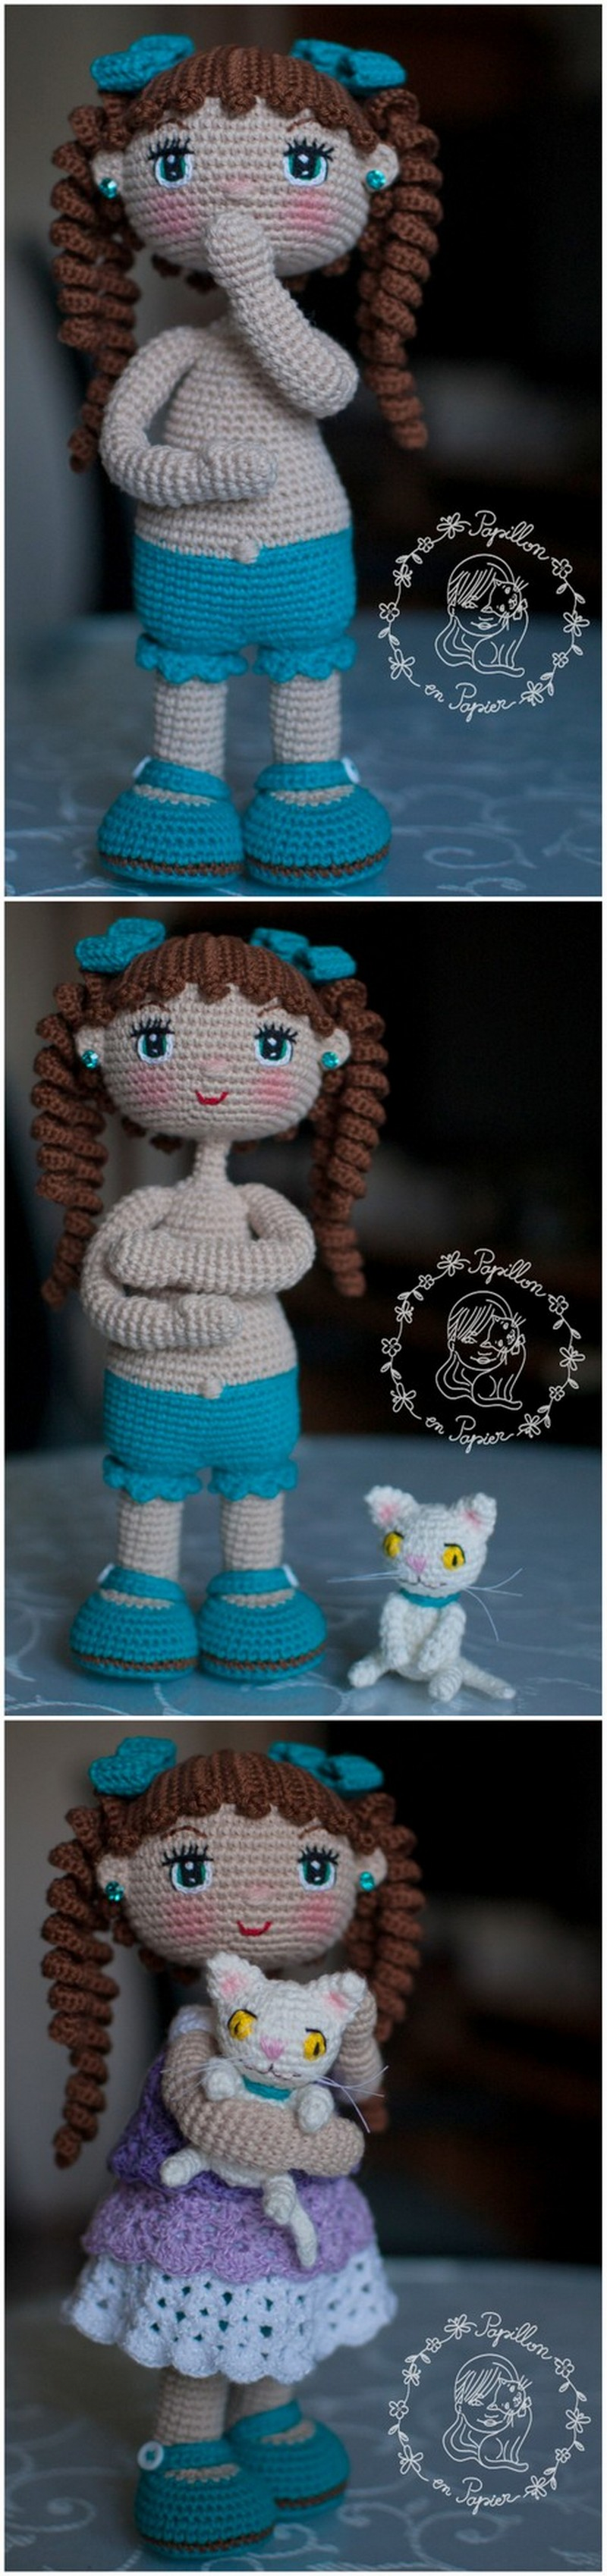 Crochet Amigurumi Doll Pattern (13)